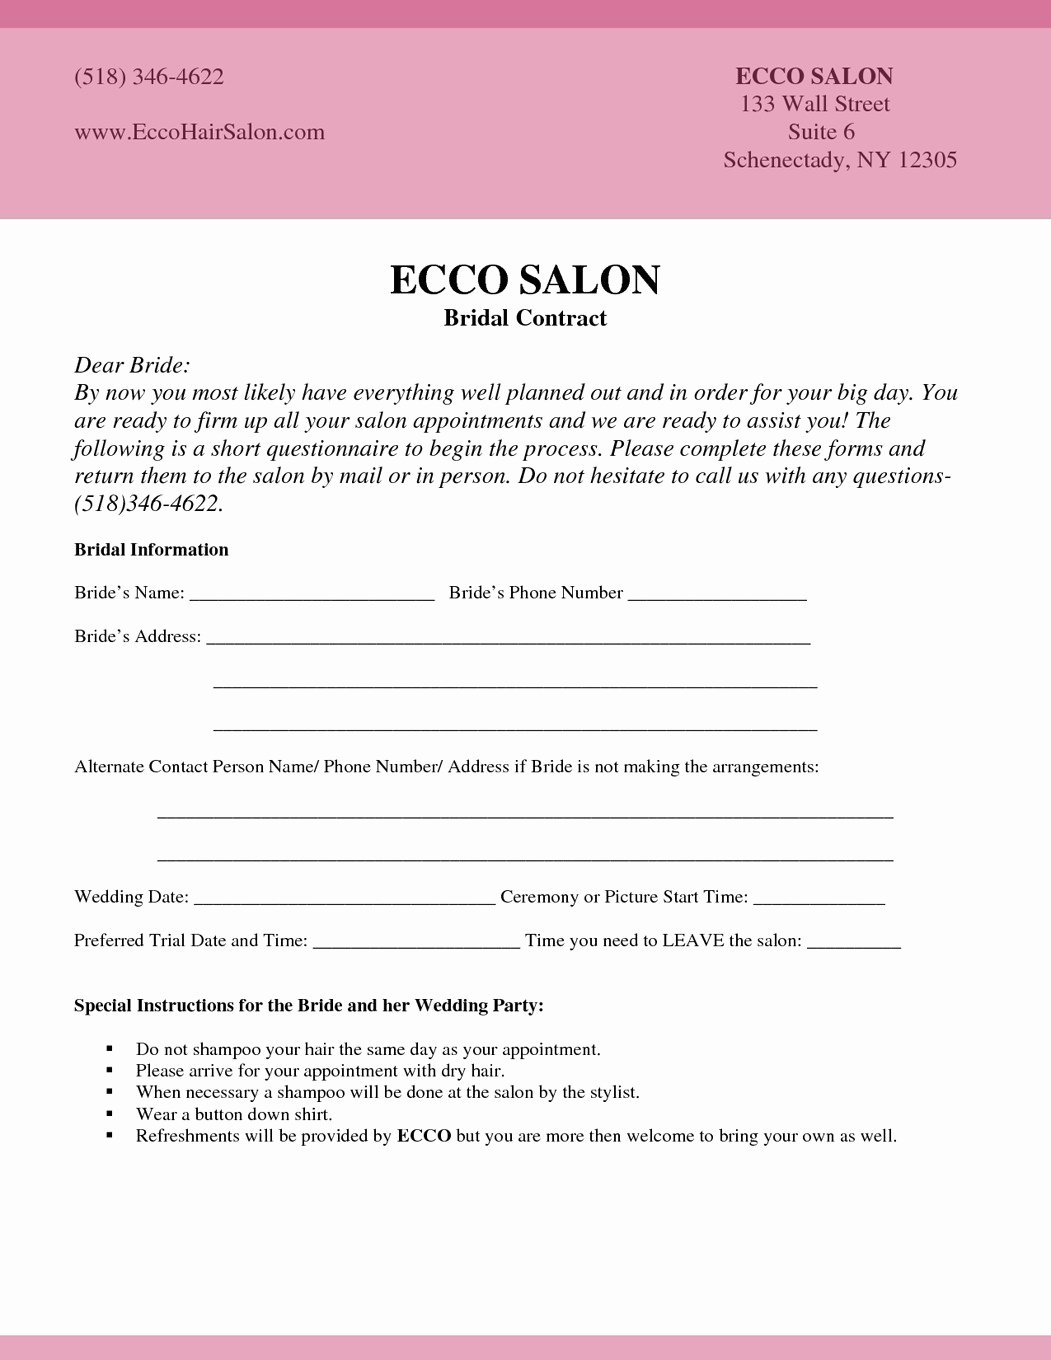 Hair Stylist Contract for Wedding Luxury Bridal Makeup Questionnaire